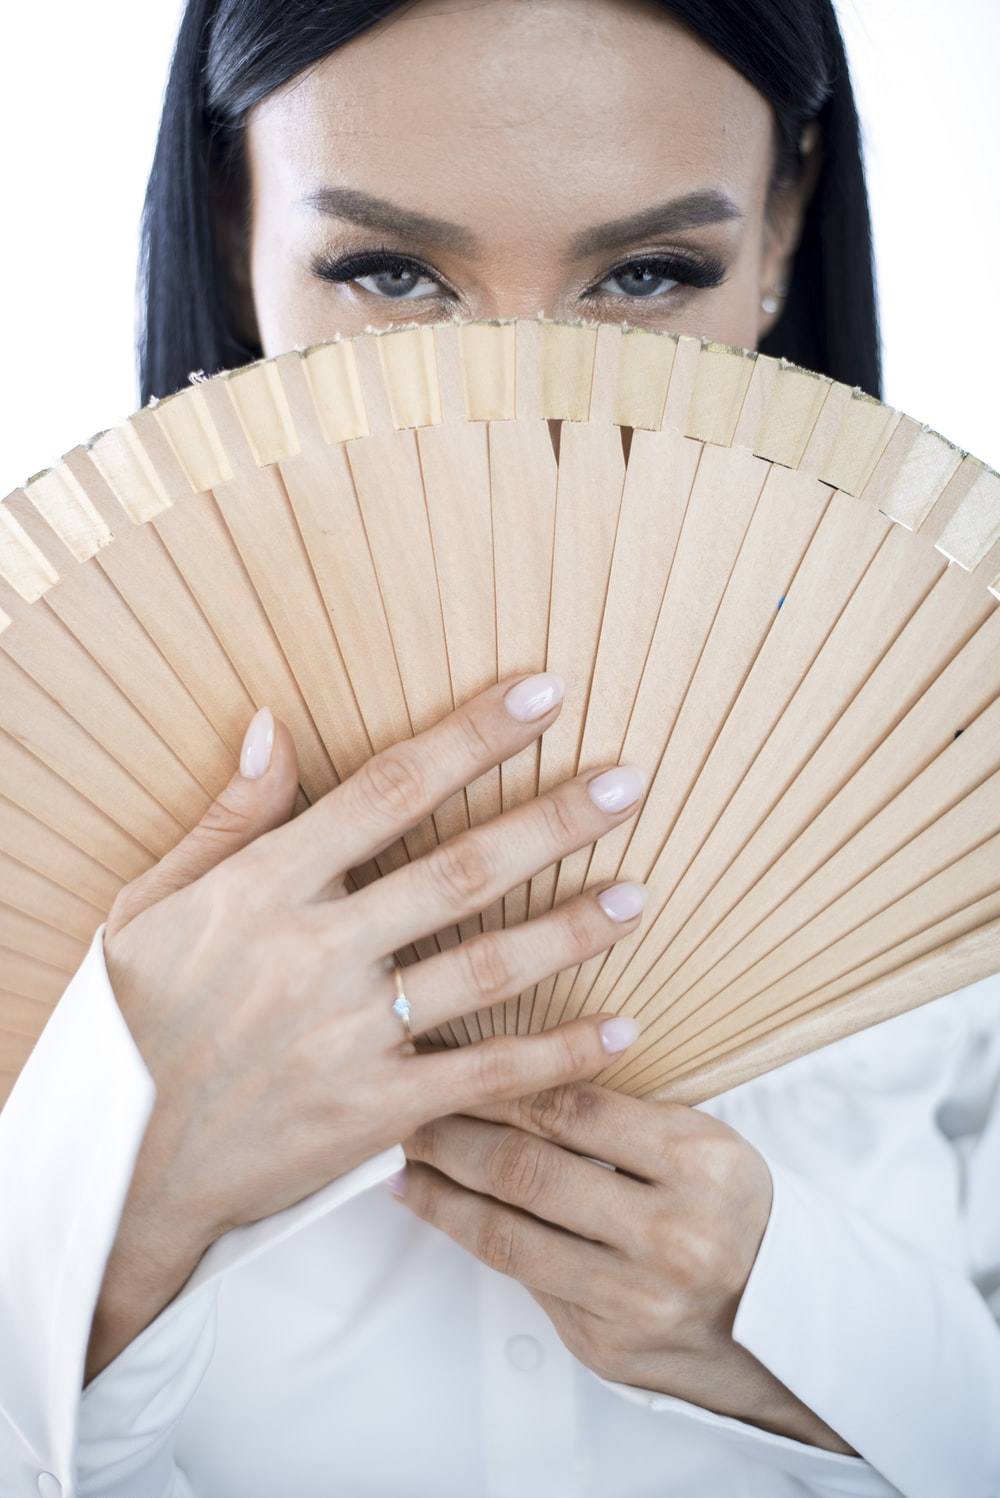 close-up photography of woman holding handfan